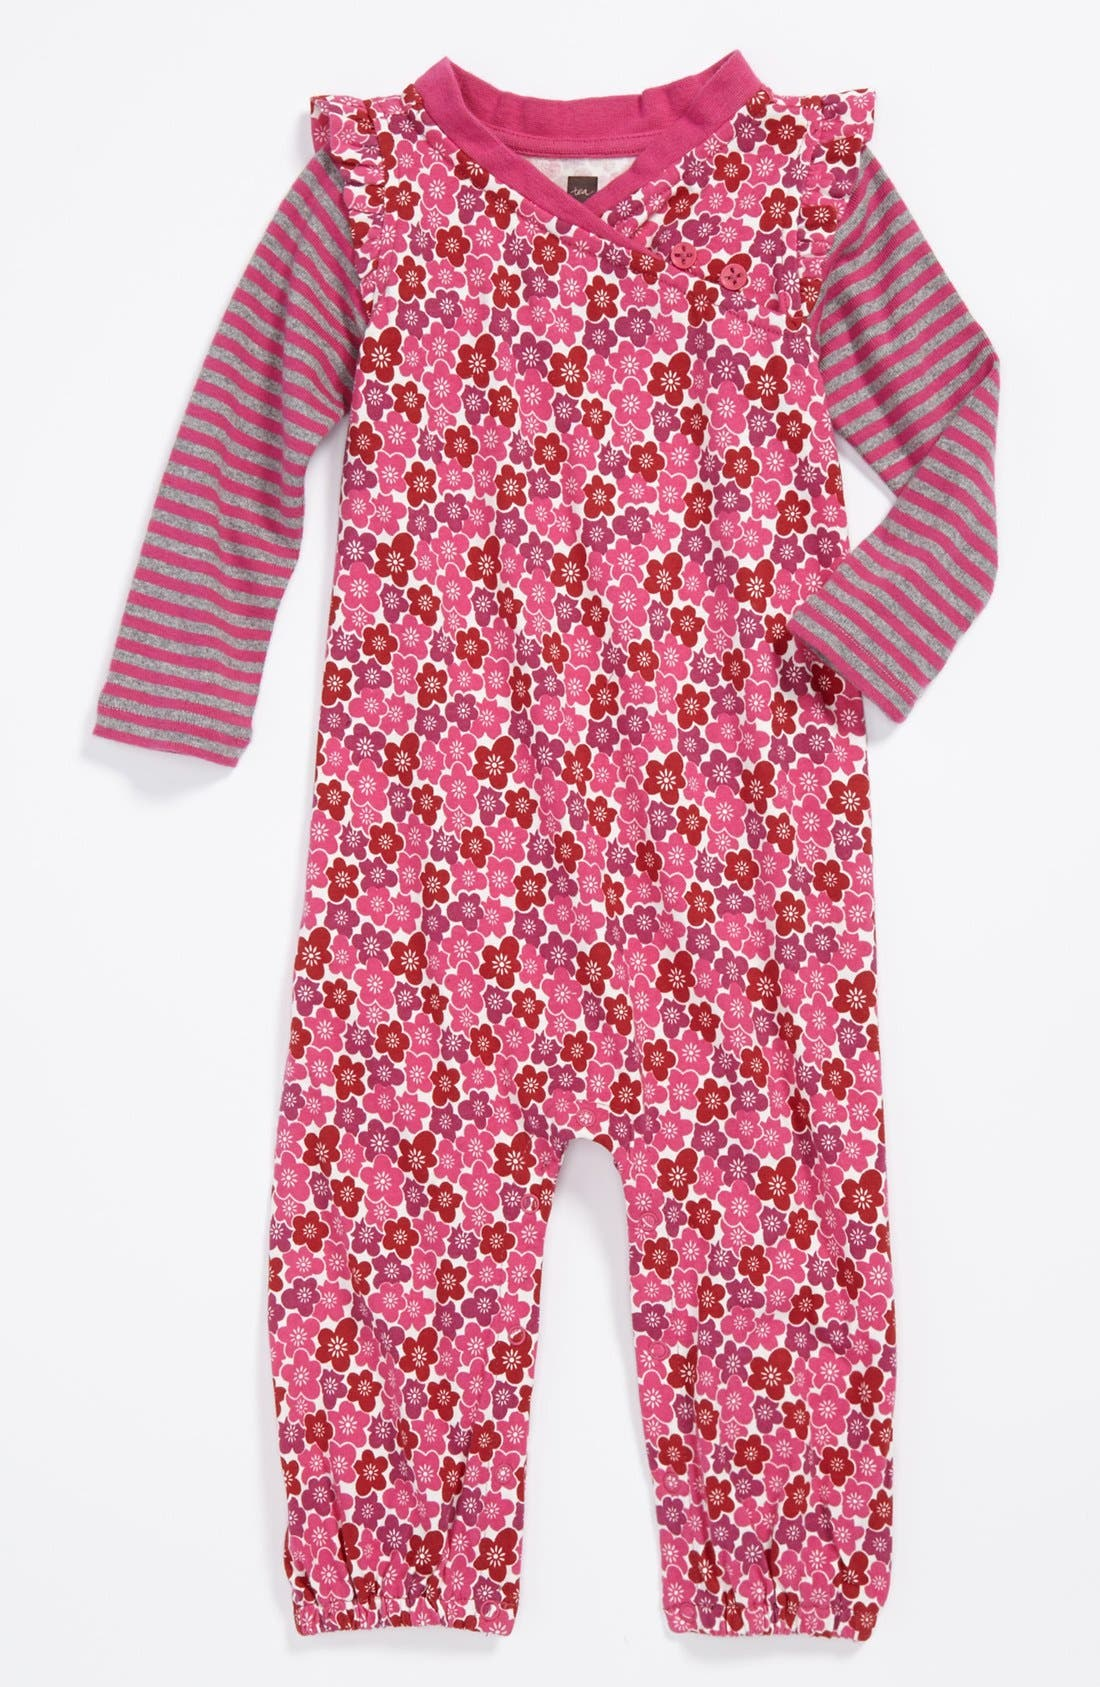 Main Image - Tea Collection 'Blossom' Coveralls (Baby Girls)